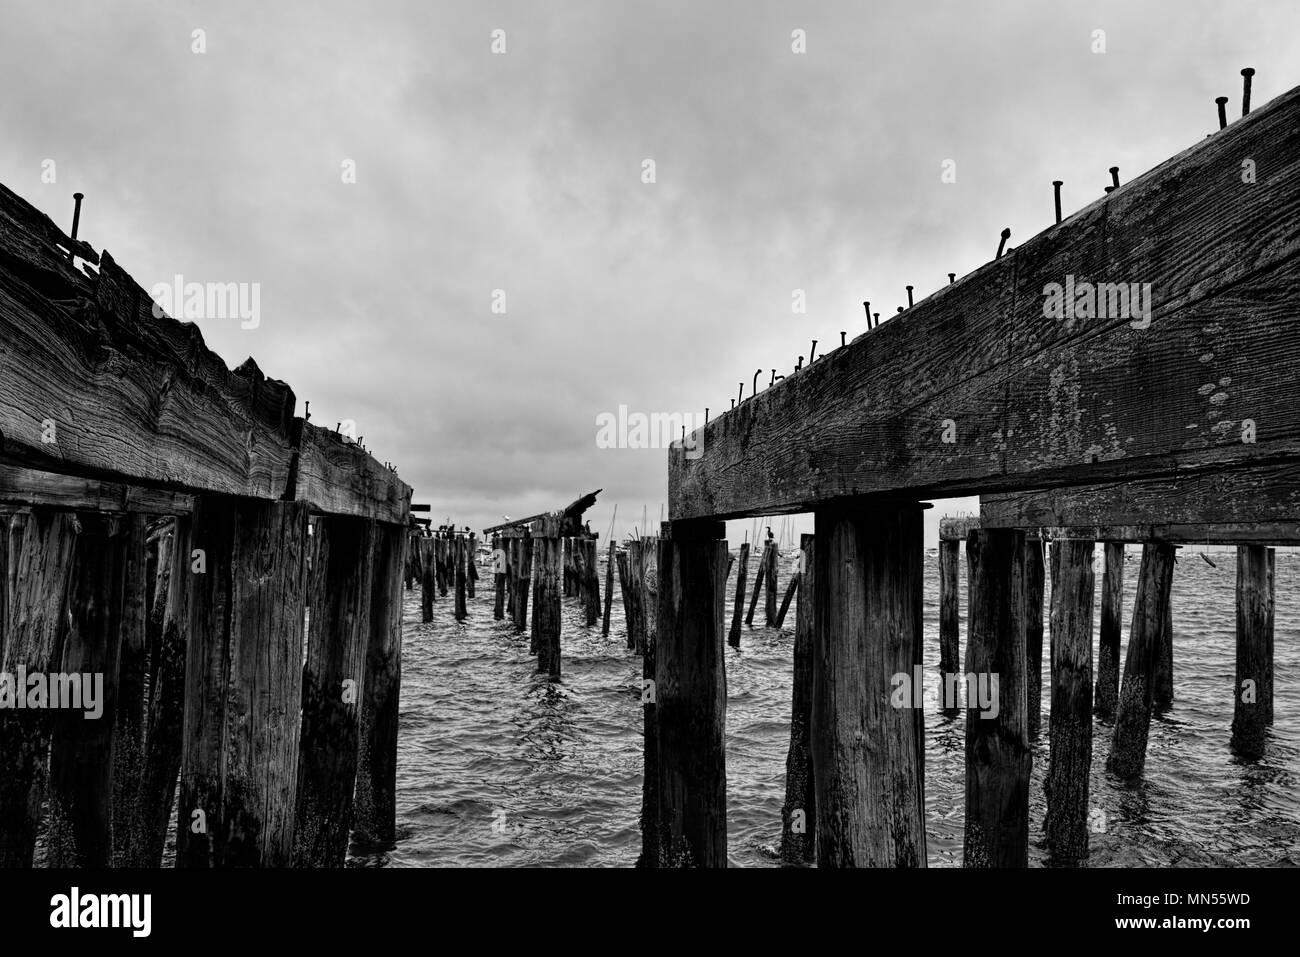 Old Pier that's in disrepair with nails sticking out of the top. - Stock Image